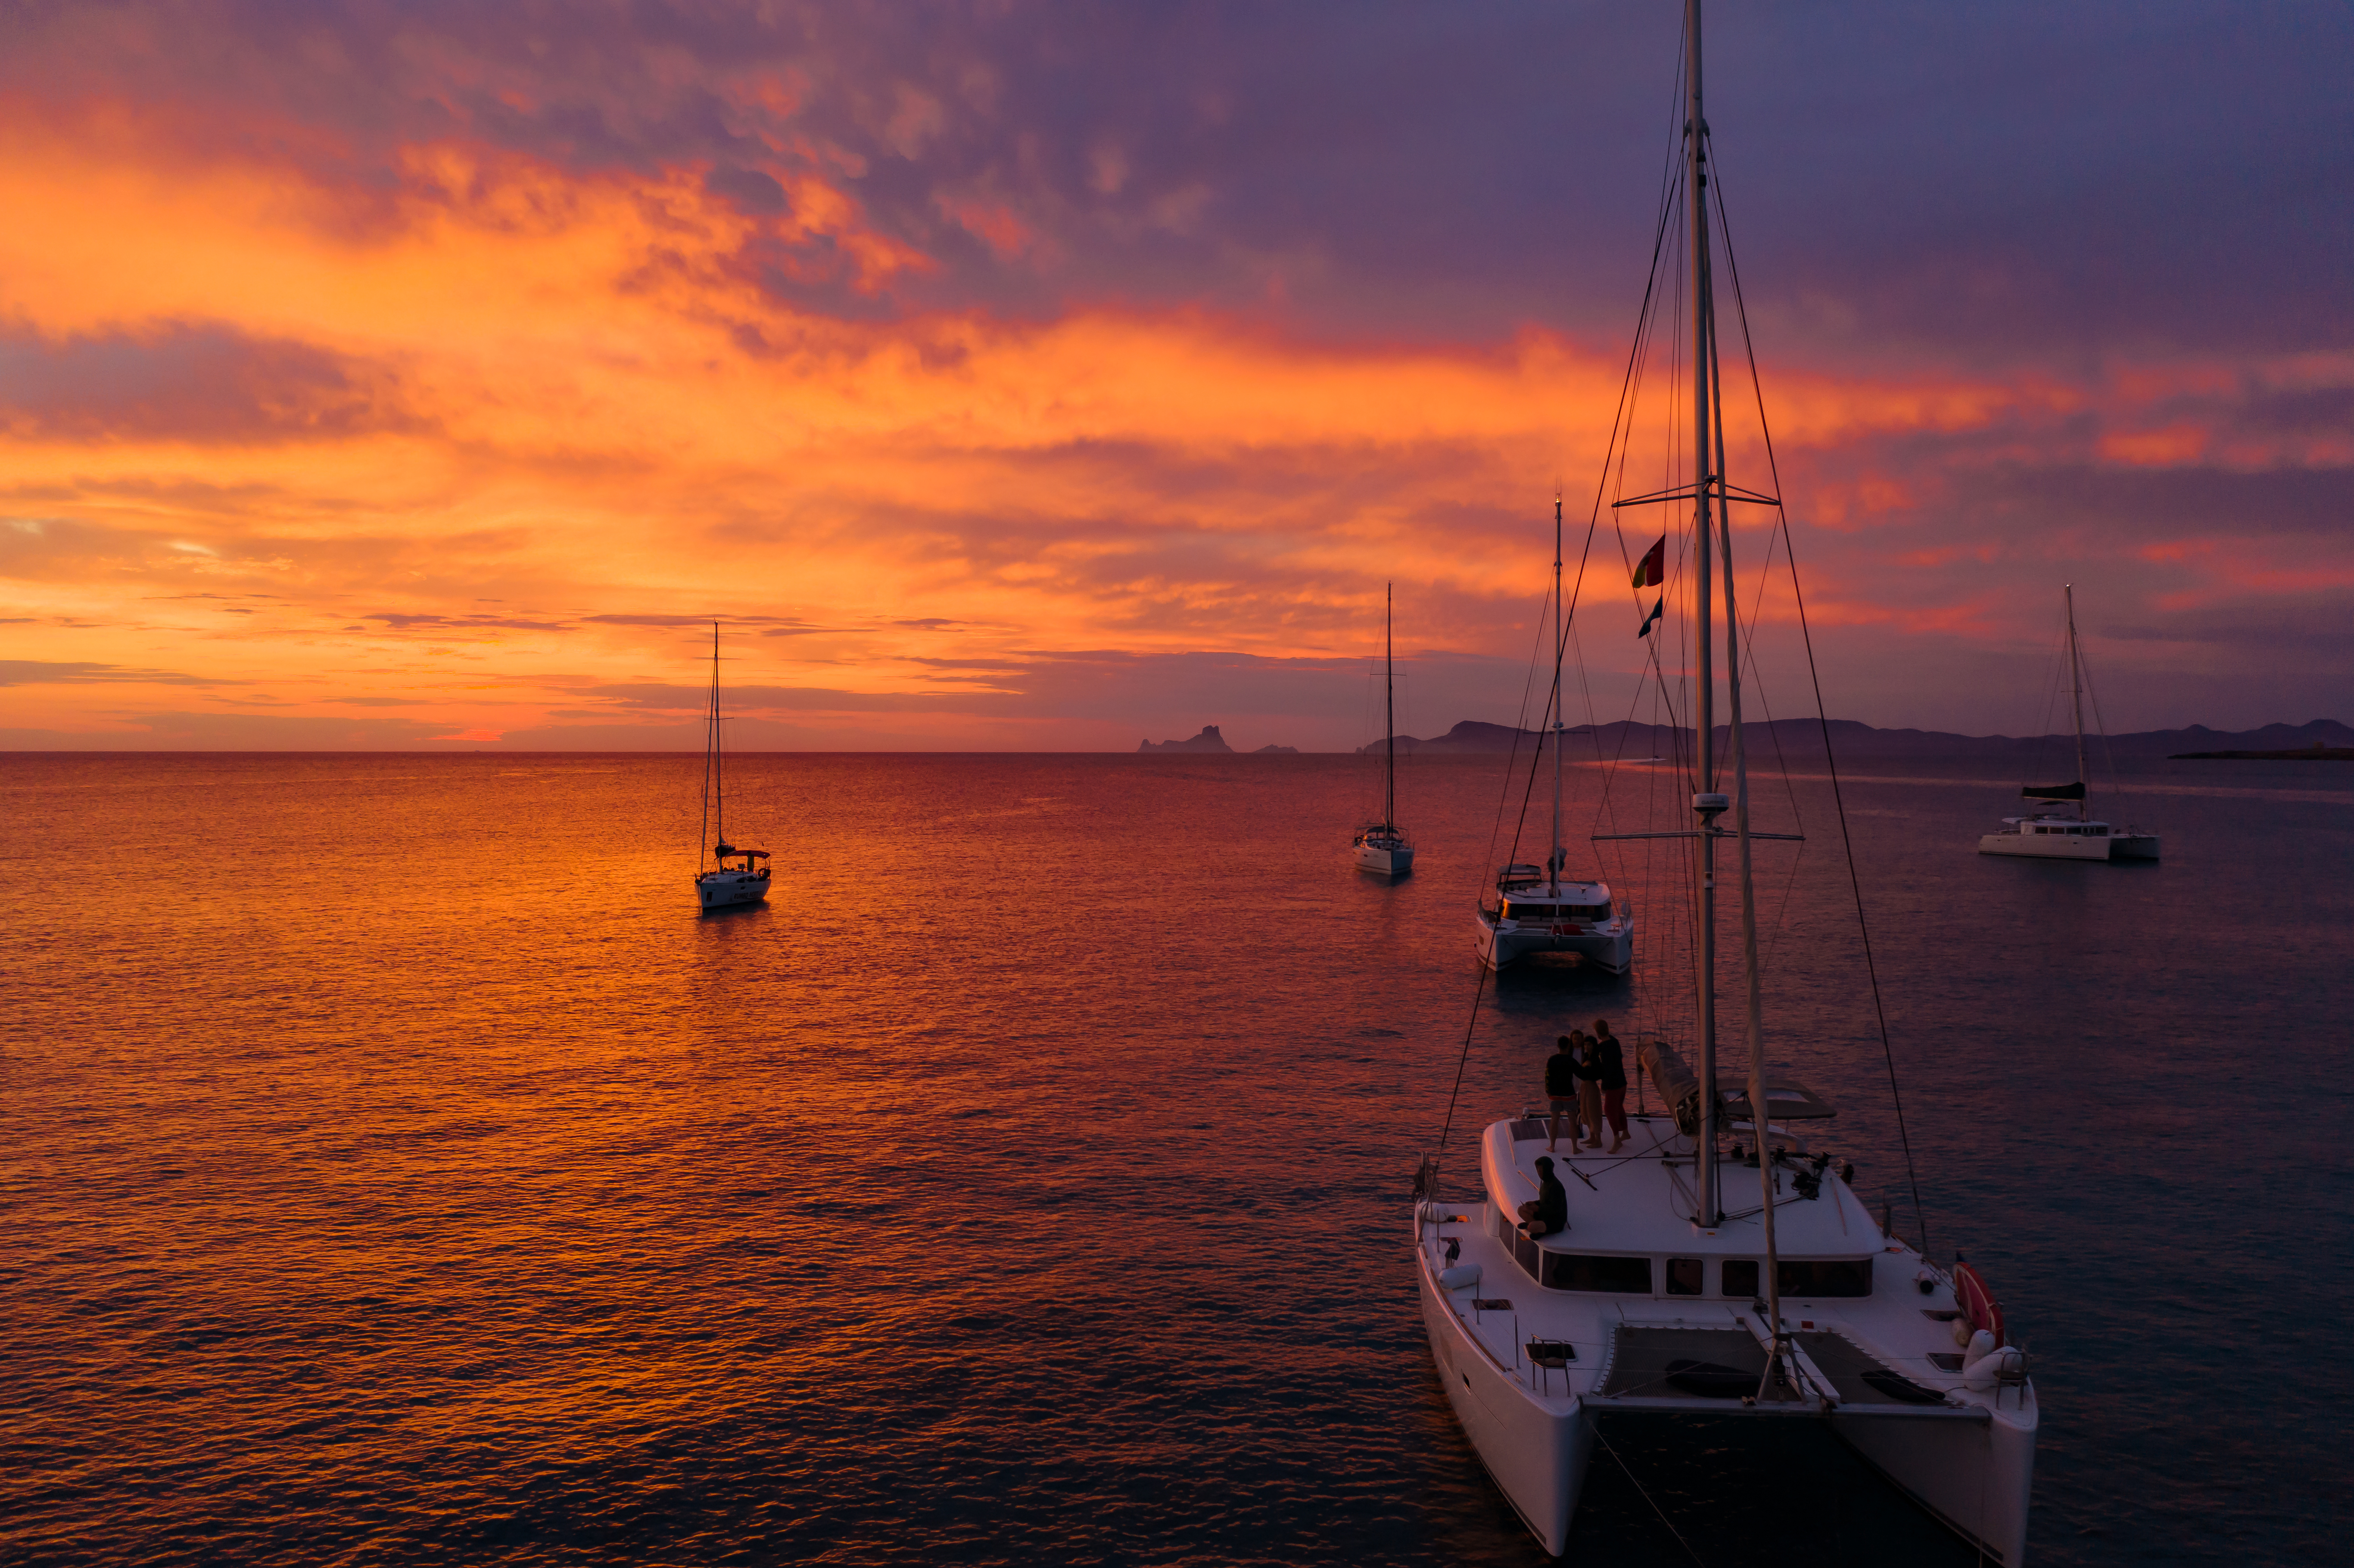 How to Choose the Right Boat for Your Sailing Trip